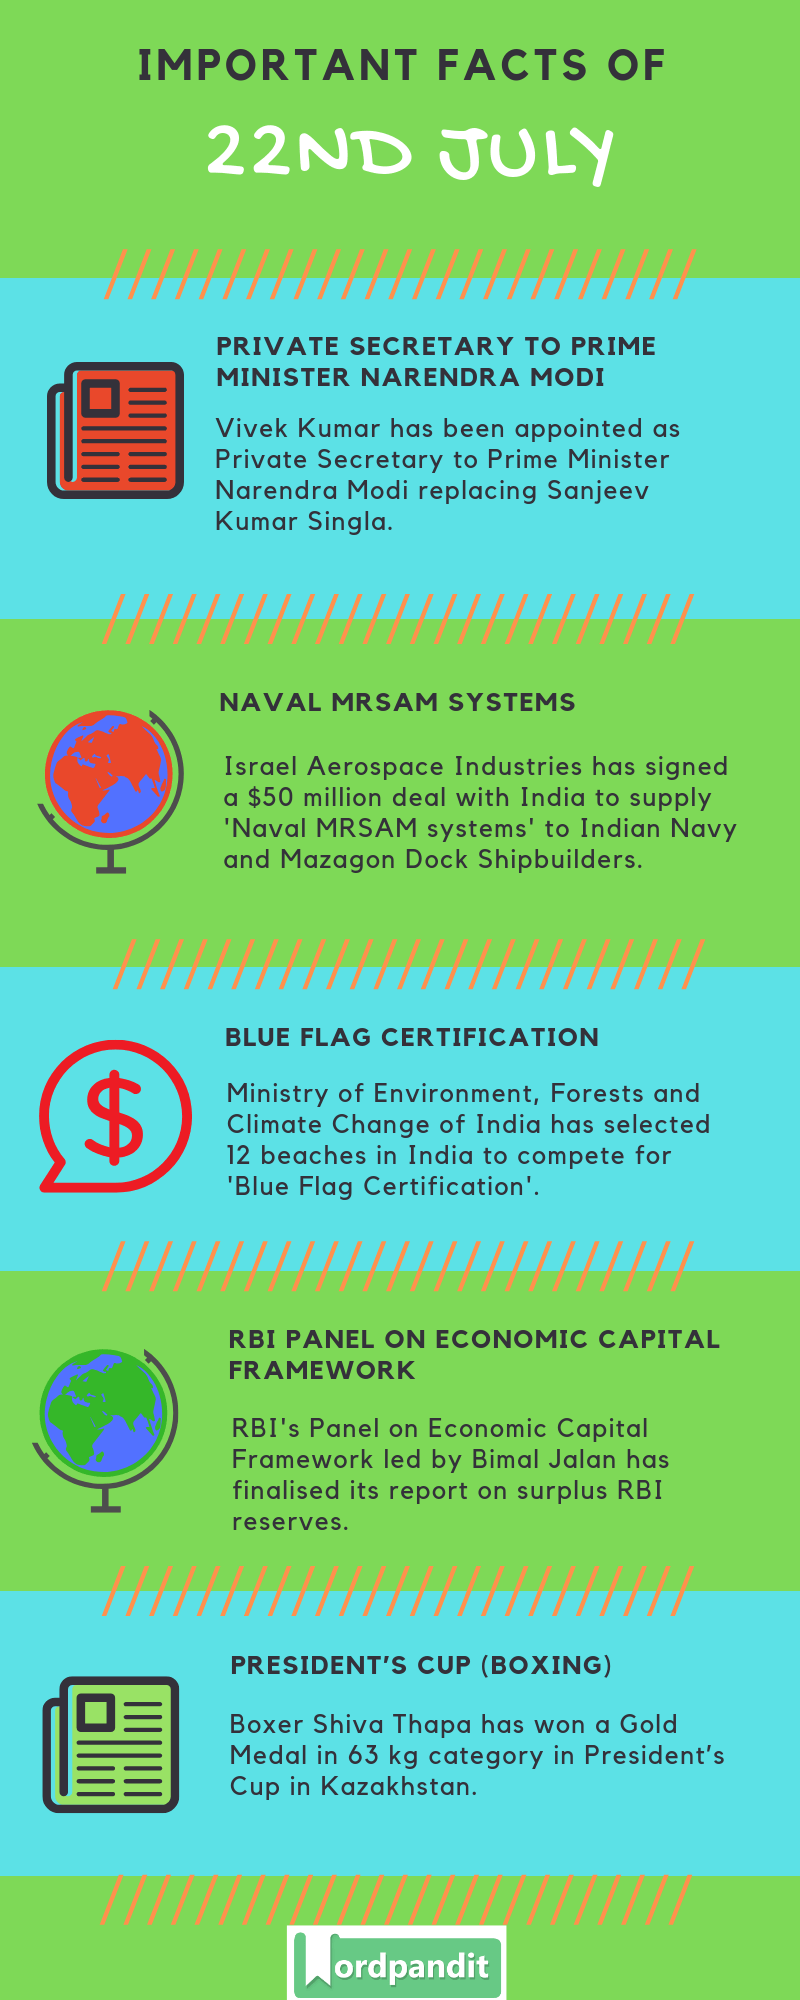 Daily Current Affairs 22 July 2019 Current Affairs Quiz 22 July 2019 Current Affairs Infographic